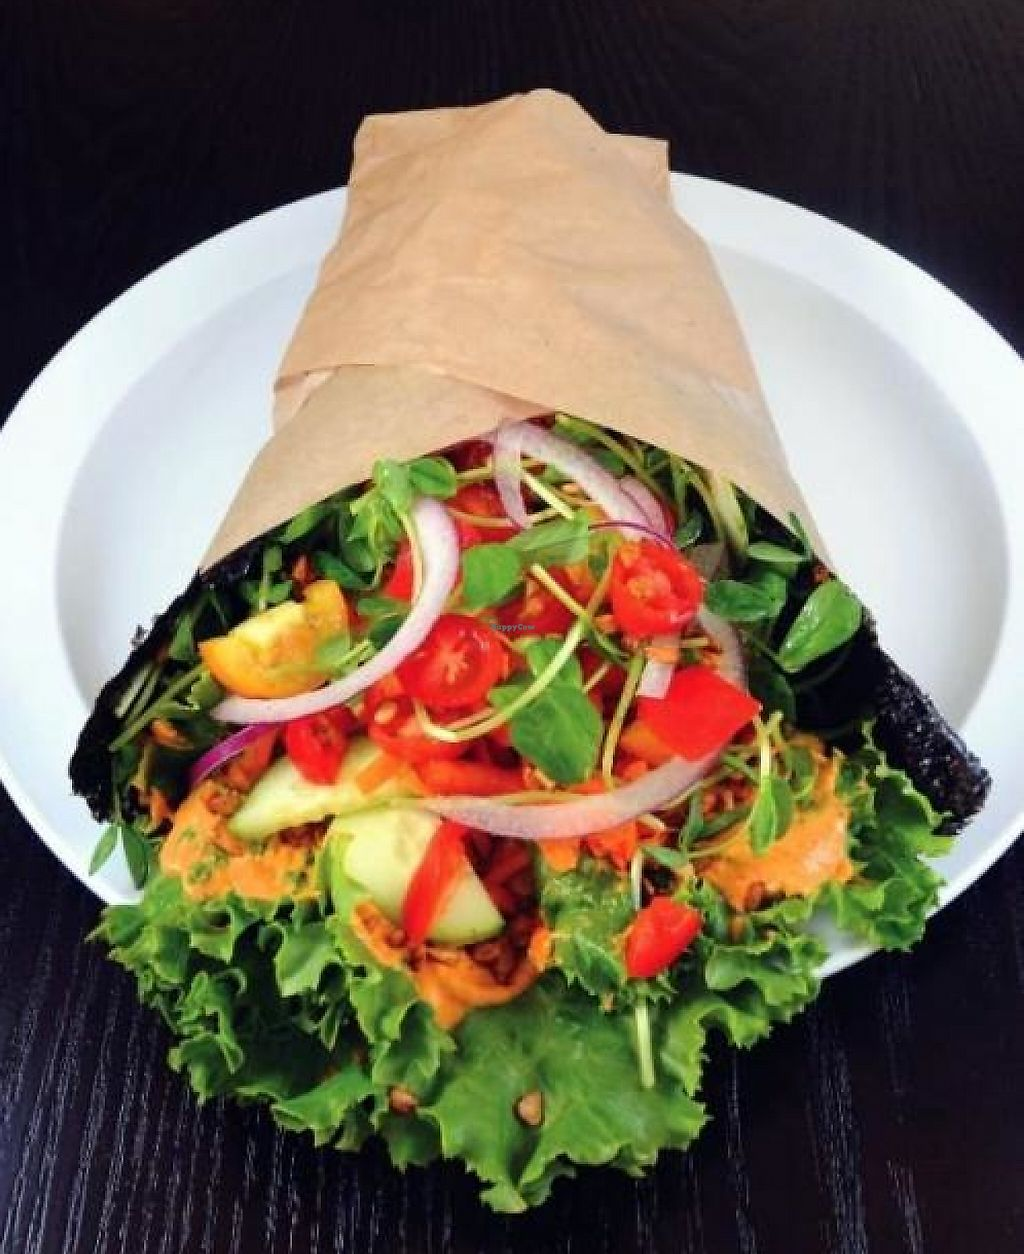 """Photo of CLOSED: Baagan  by <a href=""""/members/profile/AngeliqueMiller"""">AngeliqueMiller</a> <br/>Nori (seaweed) Wrap with fresh veggies and house-made spreads <br/> February 7, 2013  - <a href='/contact/abuse/image/27372/194239'>Report</a>"""